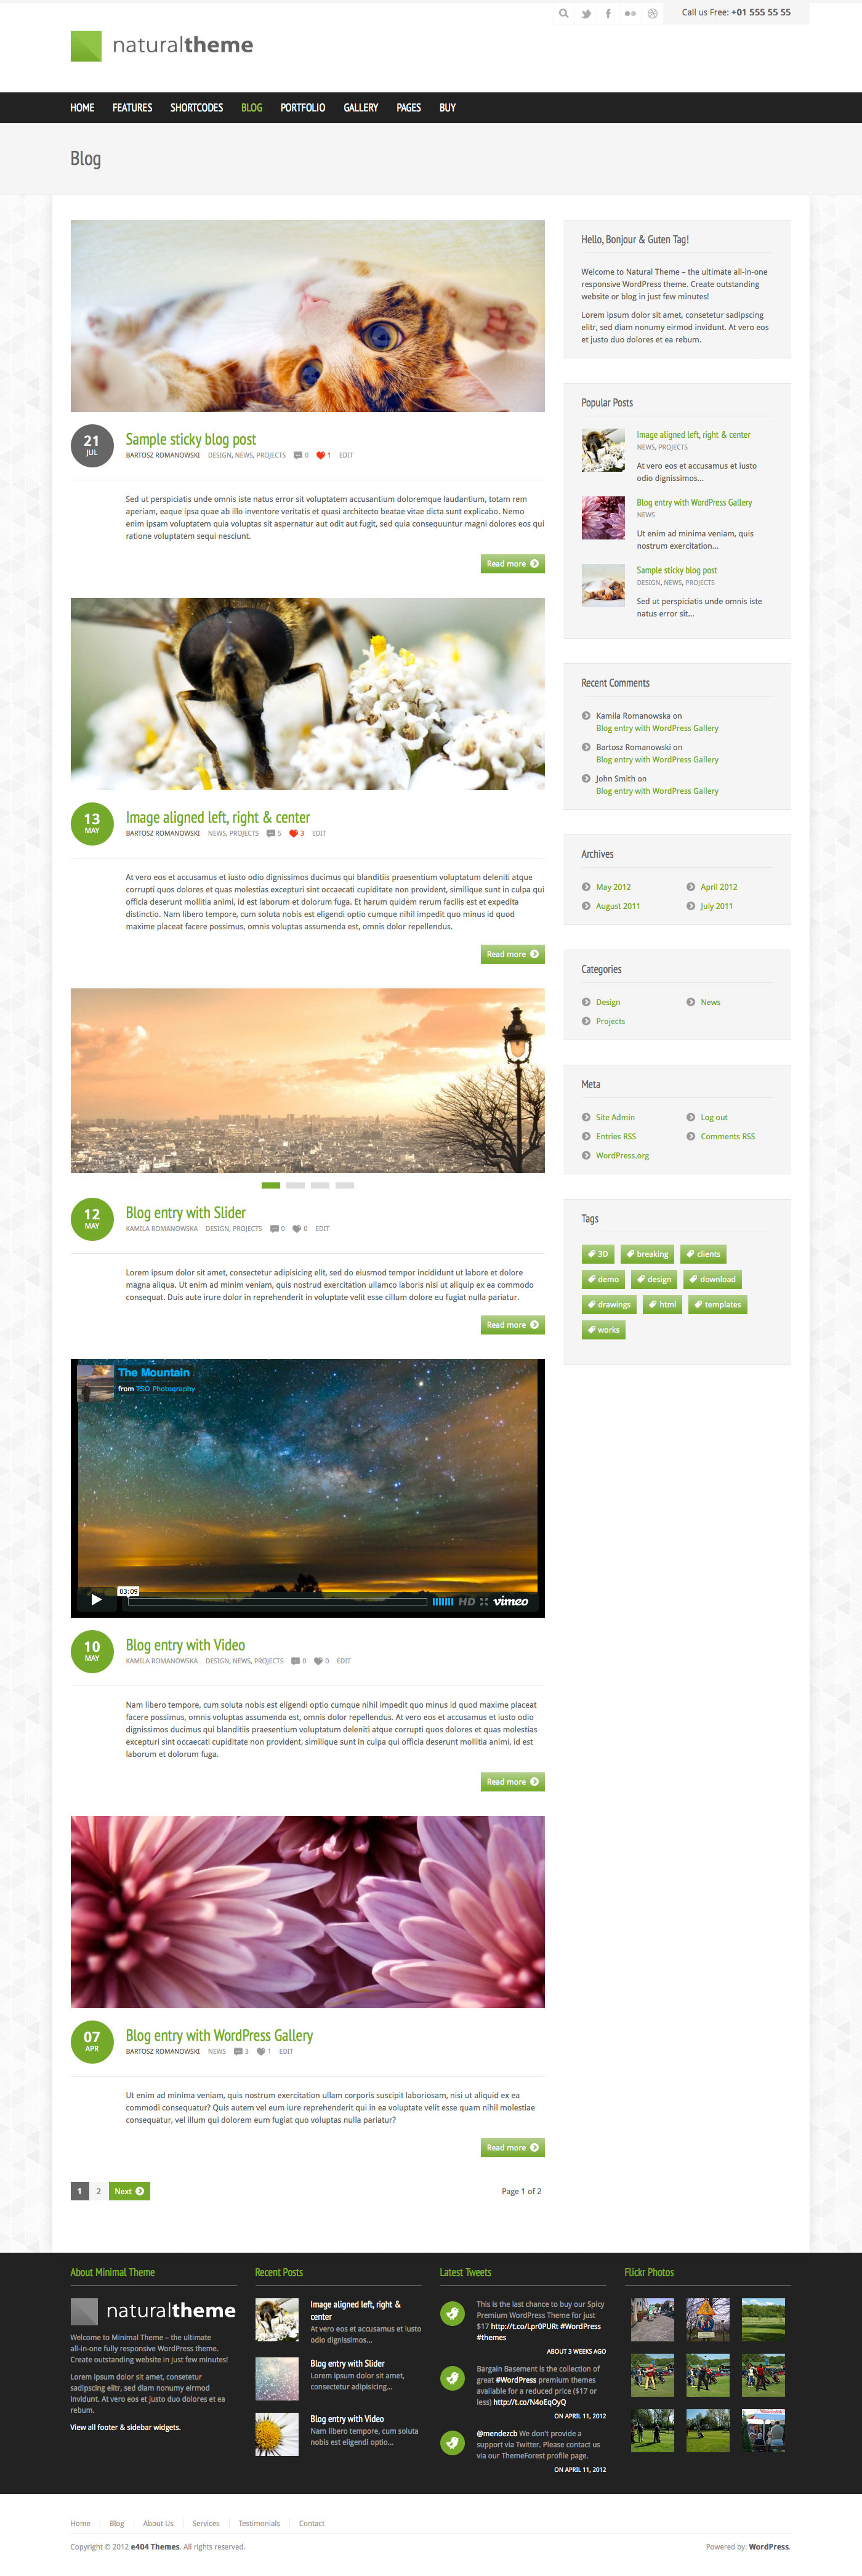 Natural - Powerful Responsive WordPress Theme - Blog page.